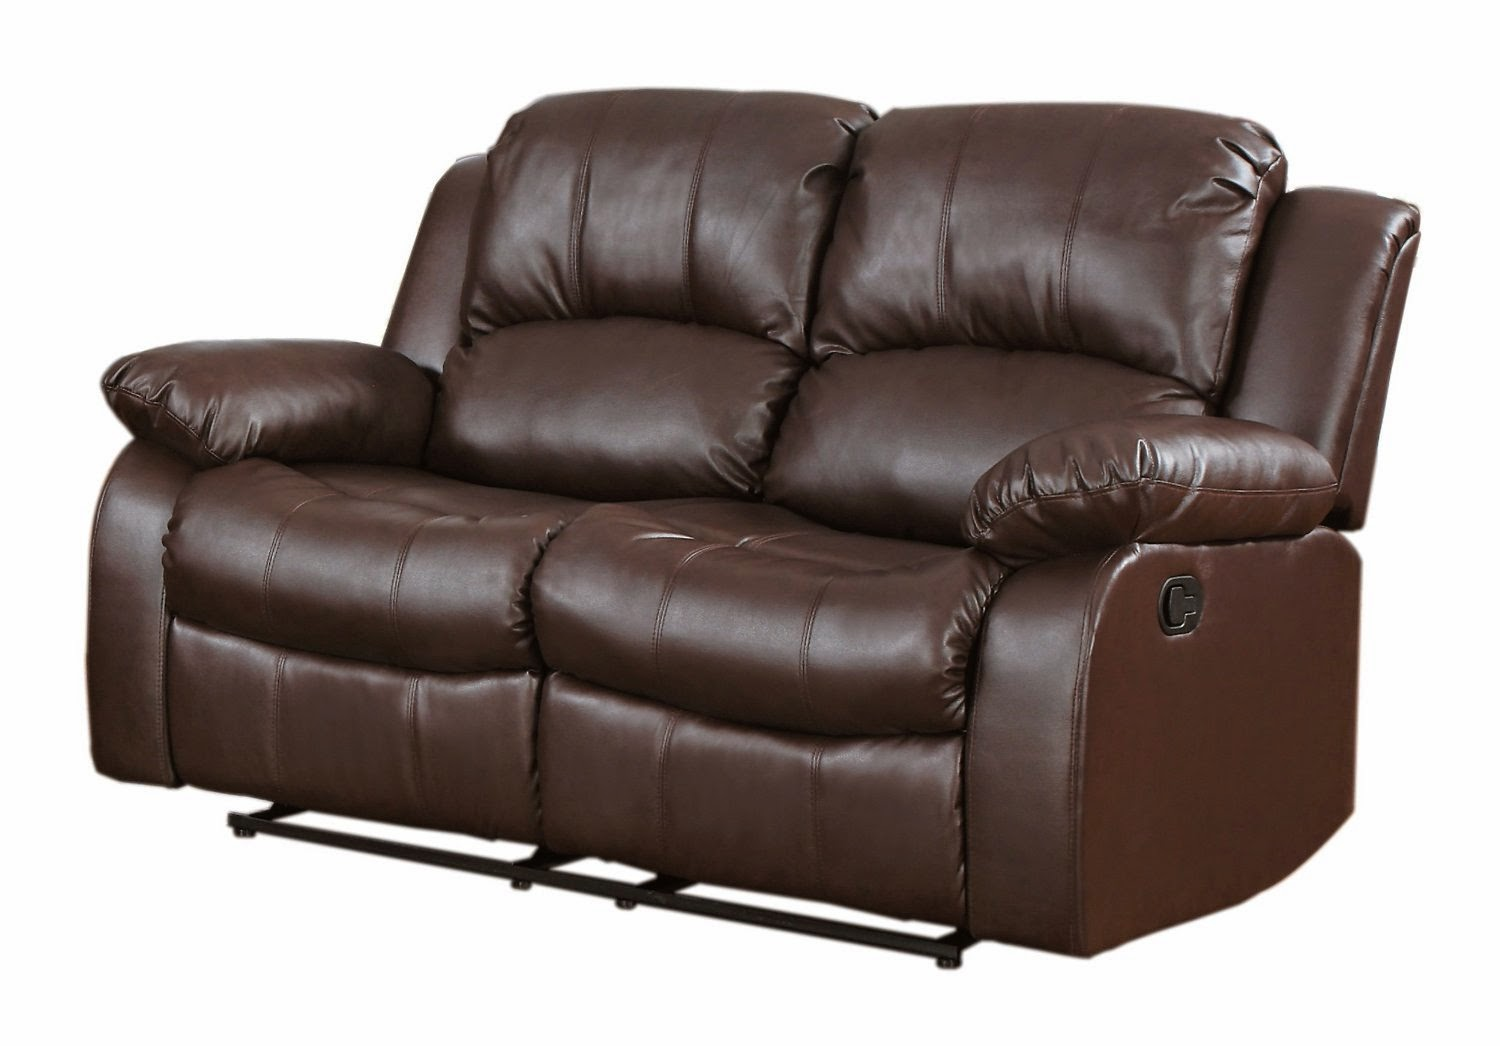 Brown leather couch brown leather couch and loveseat Chocolate loveseat